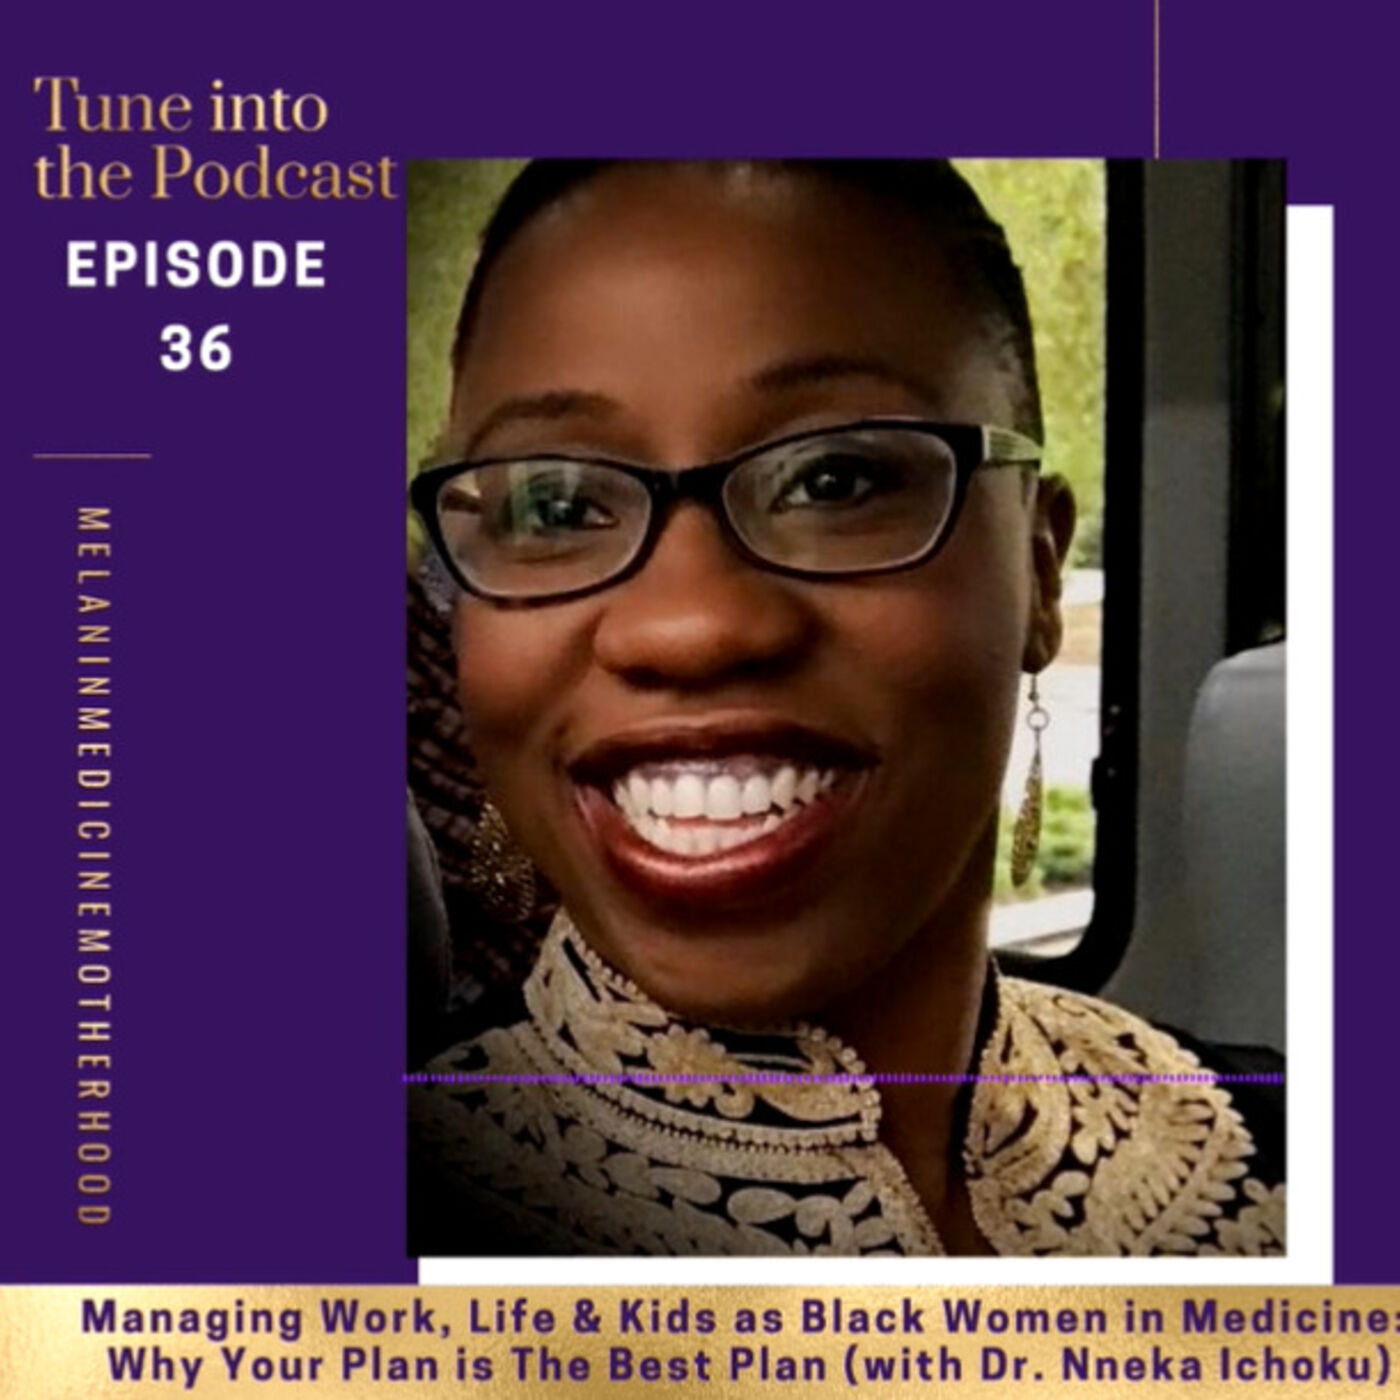 Episode 36: Managing Work, Life & Kids as Black Women in Medicine: Why Your Plan is The Best Plan